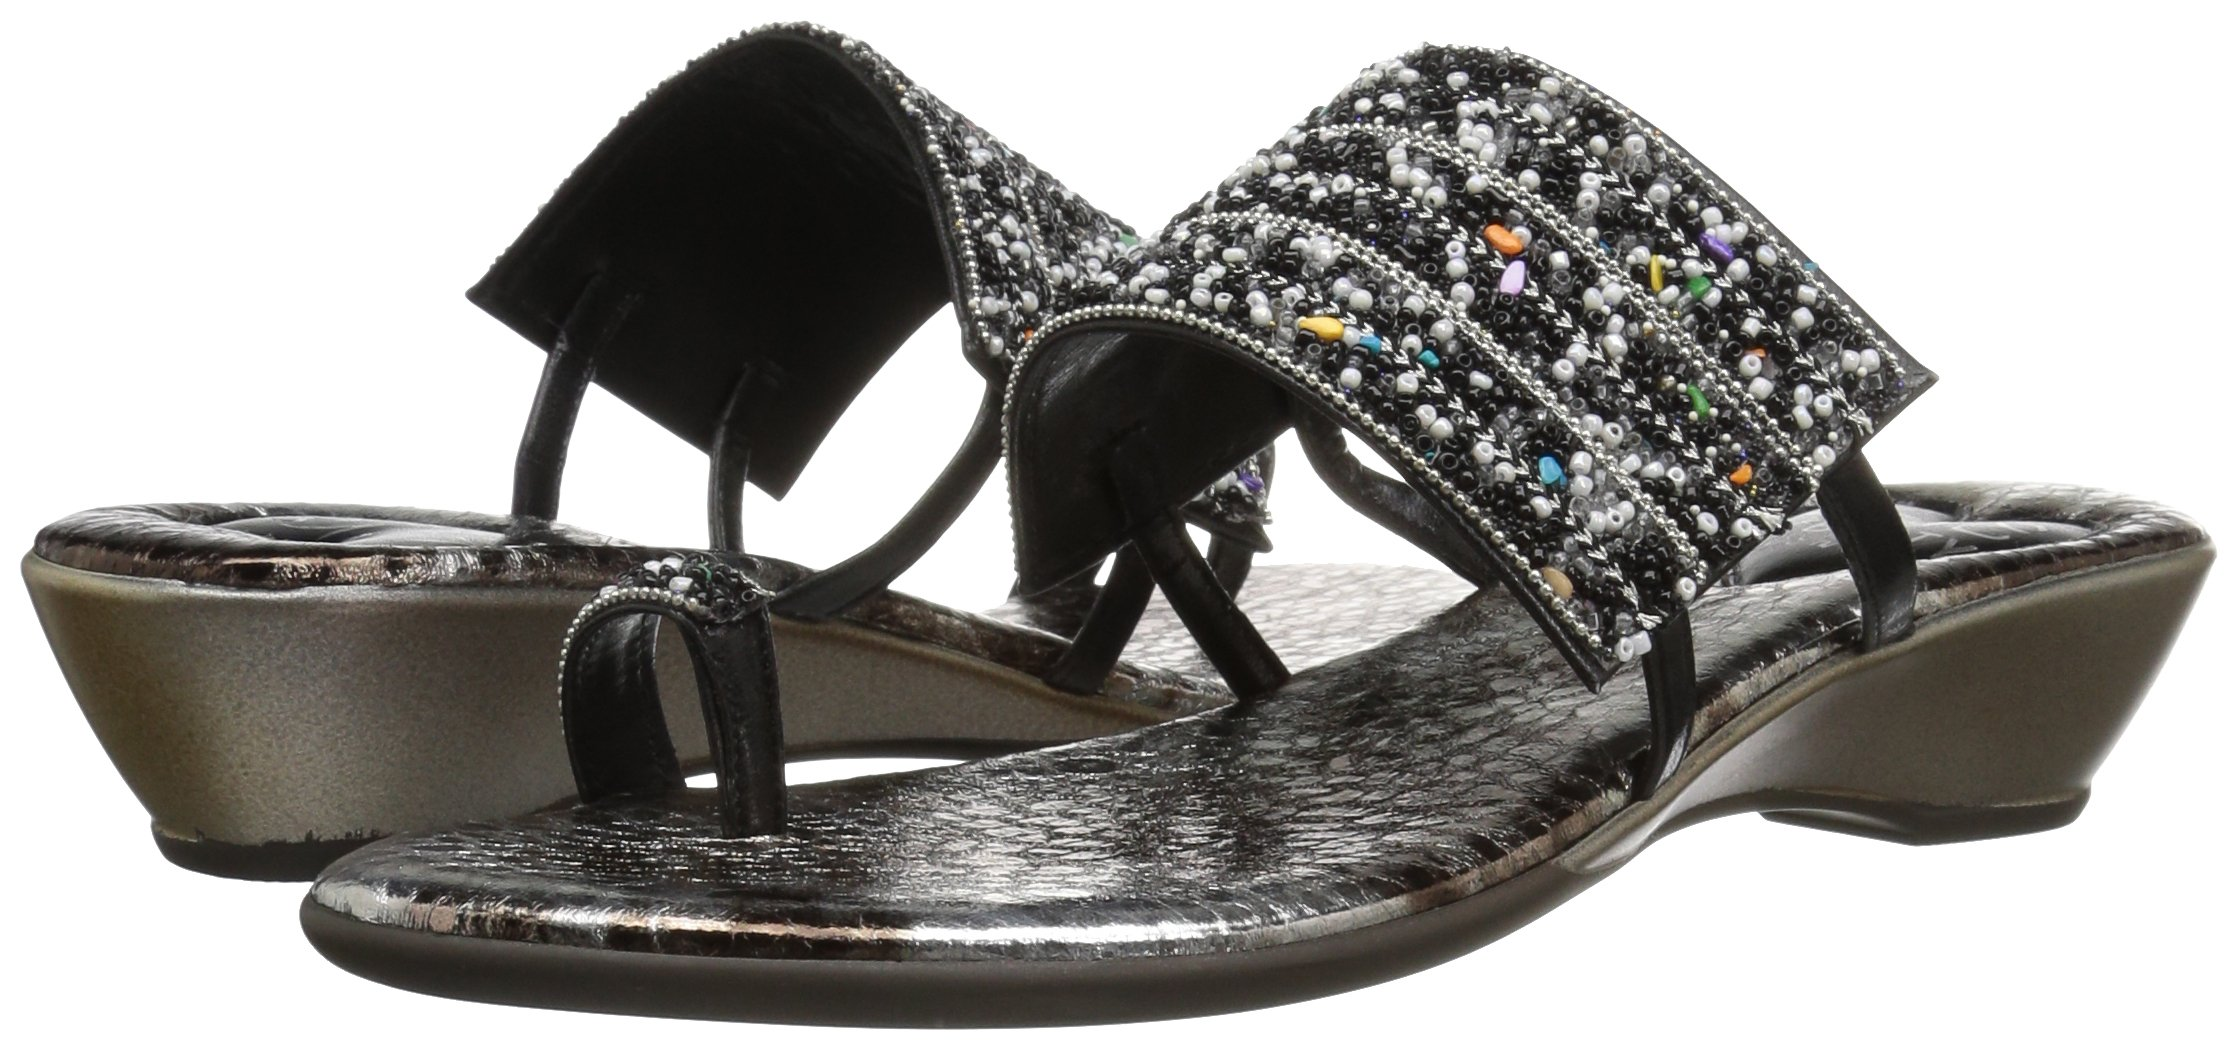 Love & Liberty Women's Sammy-Ll Toe Ring Sandal, Black, 7 M US by Love & Liberty (Image #6)